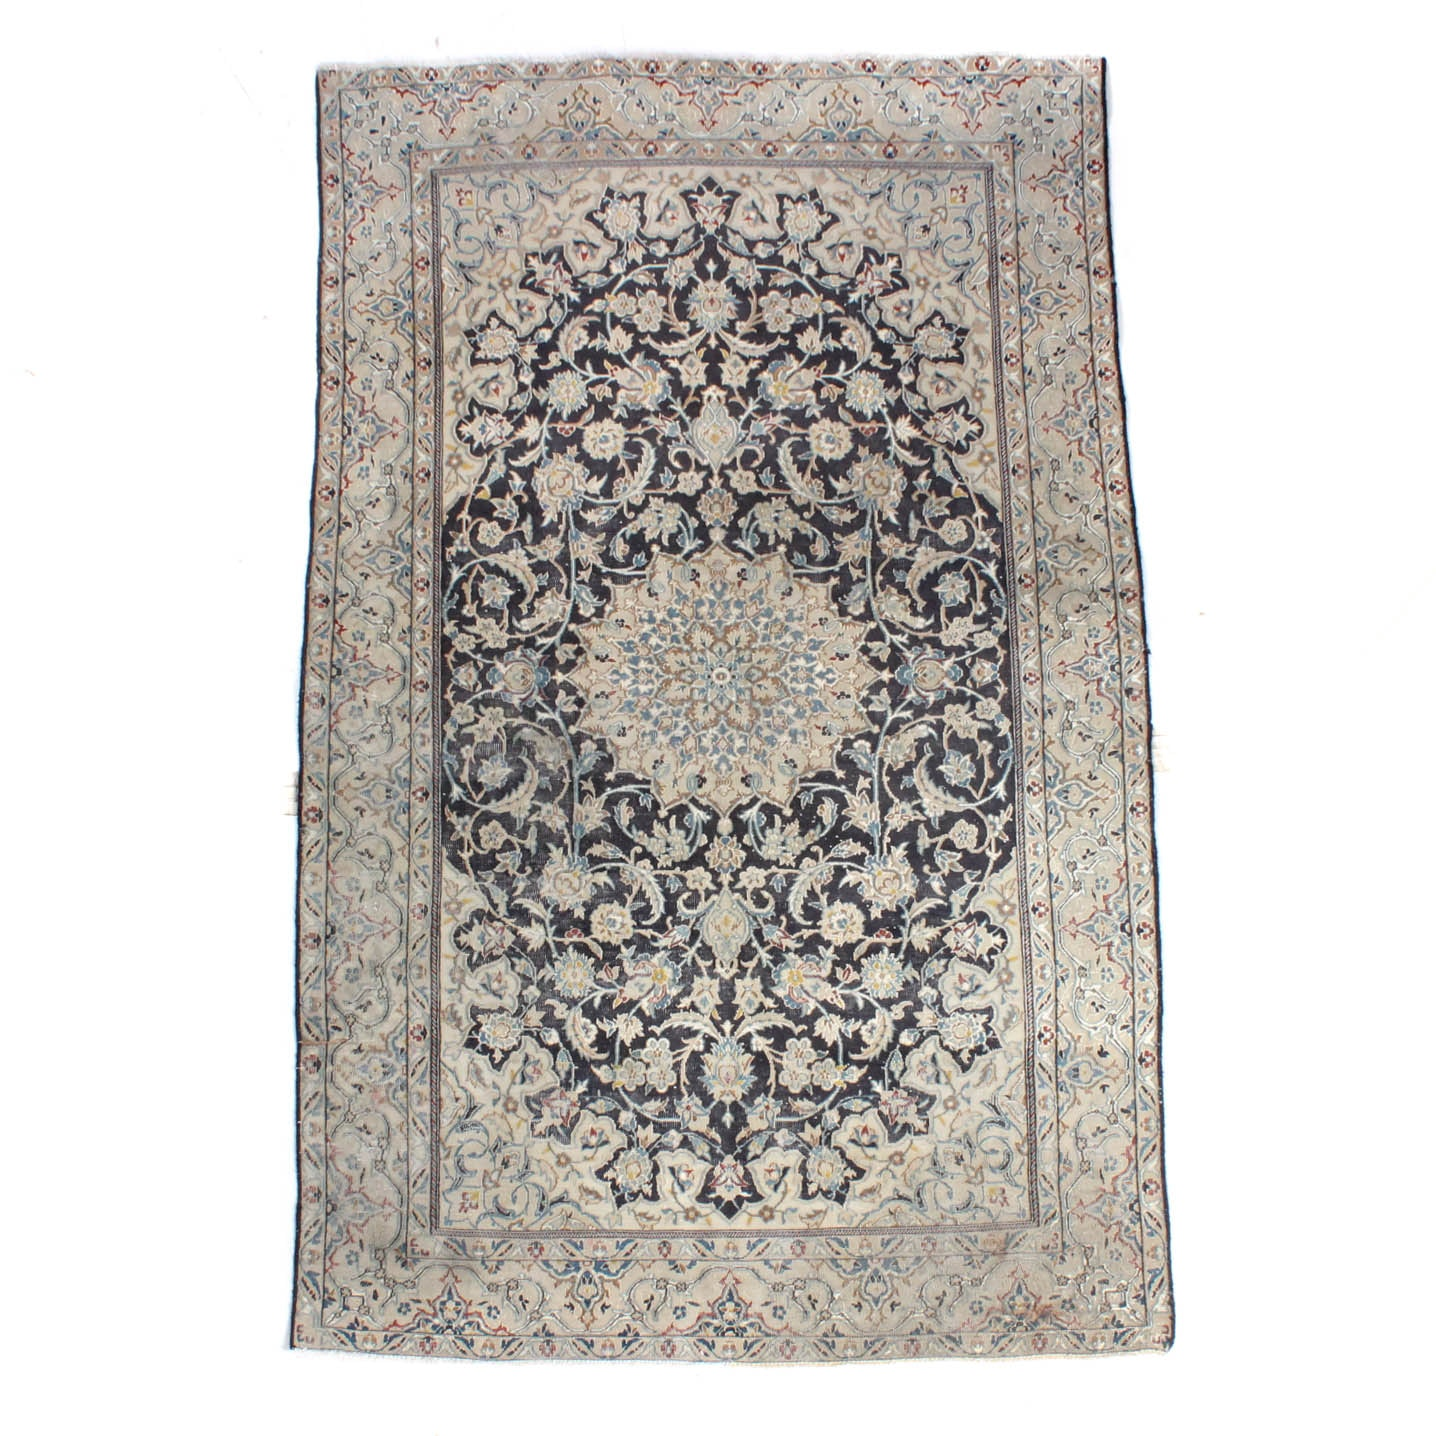 Vintage Hand-Knotted Silk Blend Persian Nain Area Rug